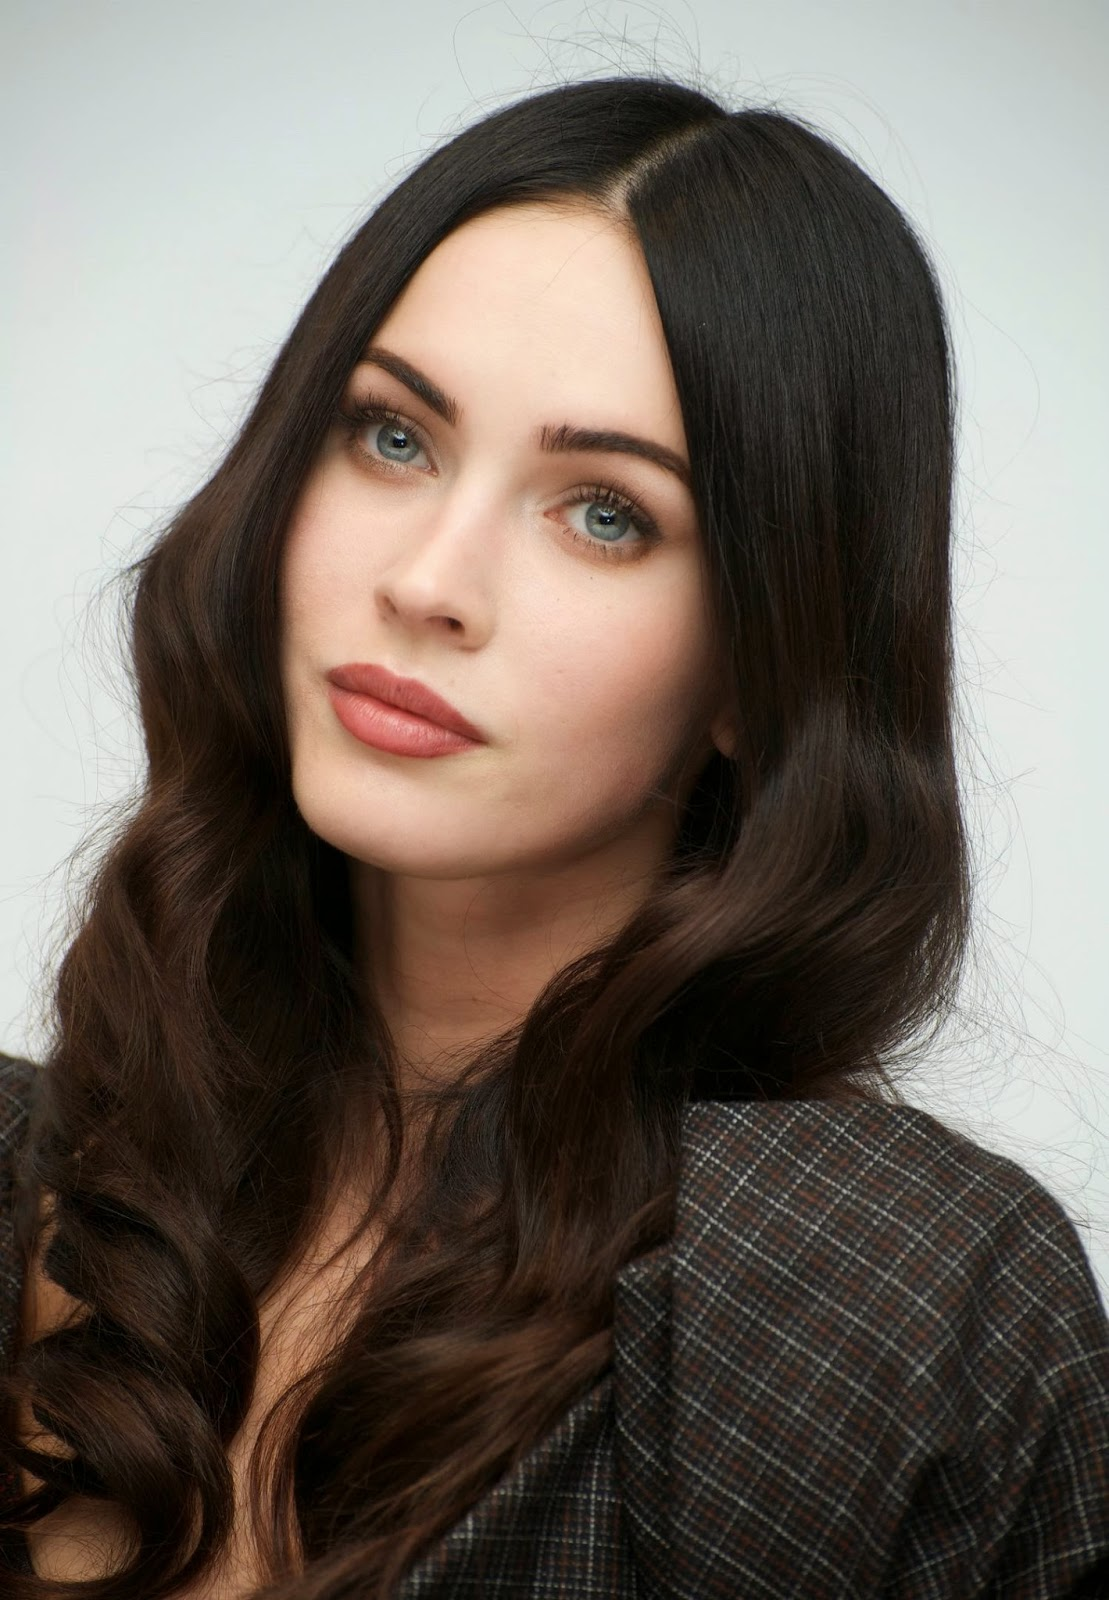 Megan Fox HD Wallpapers Free Download